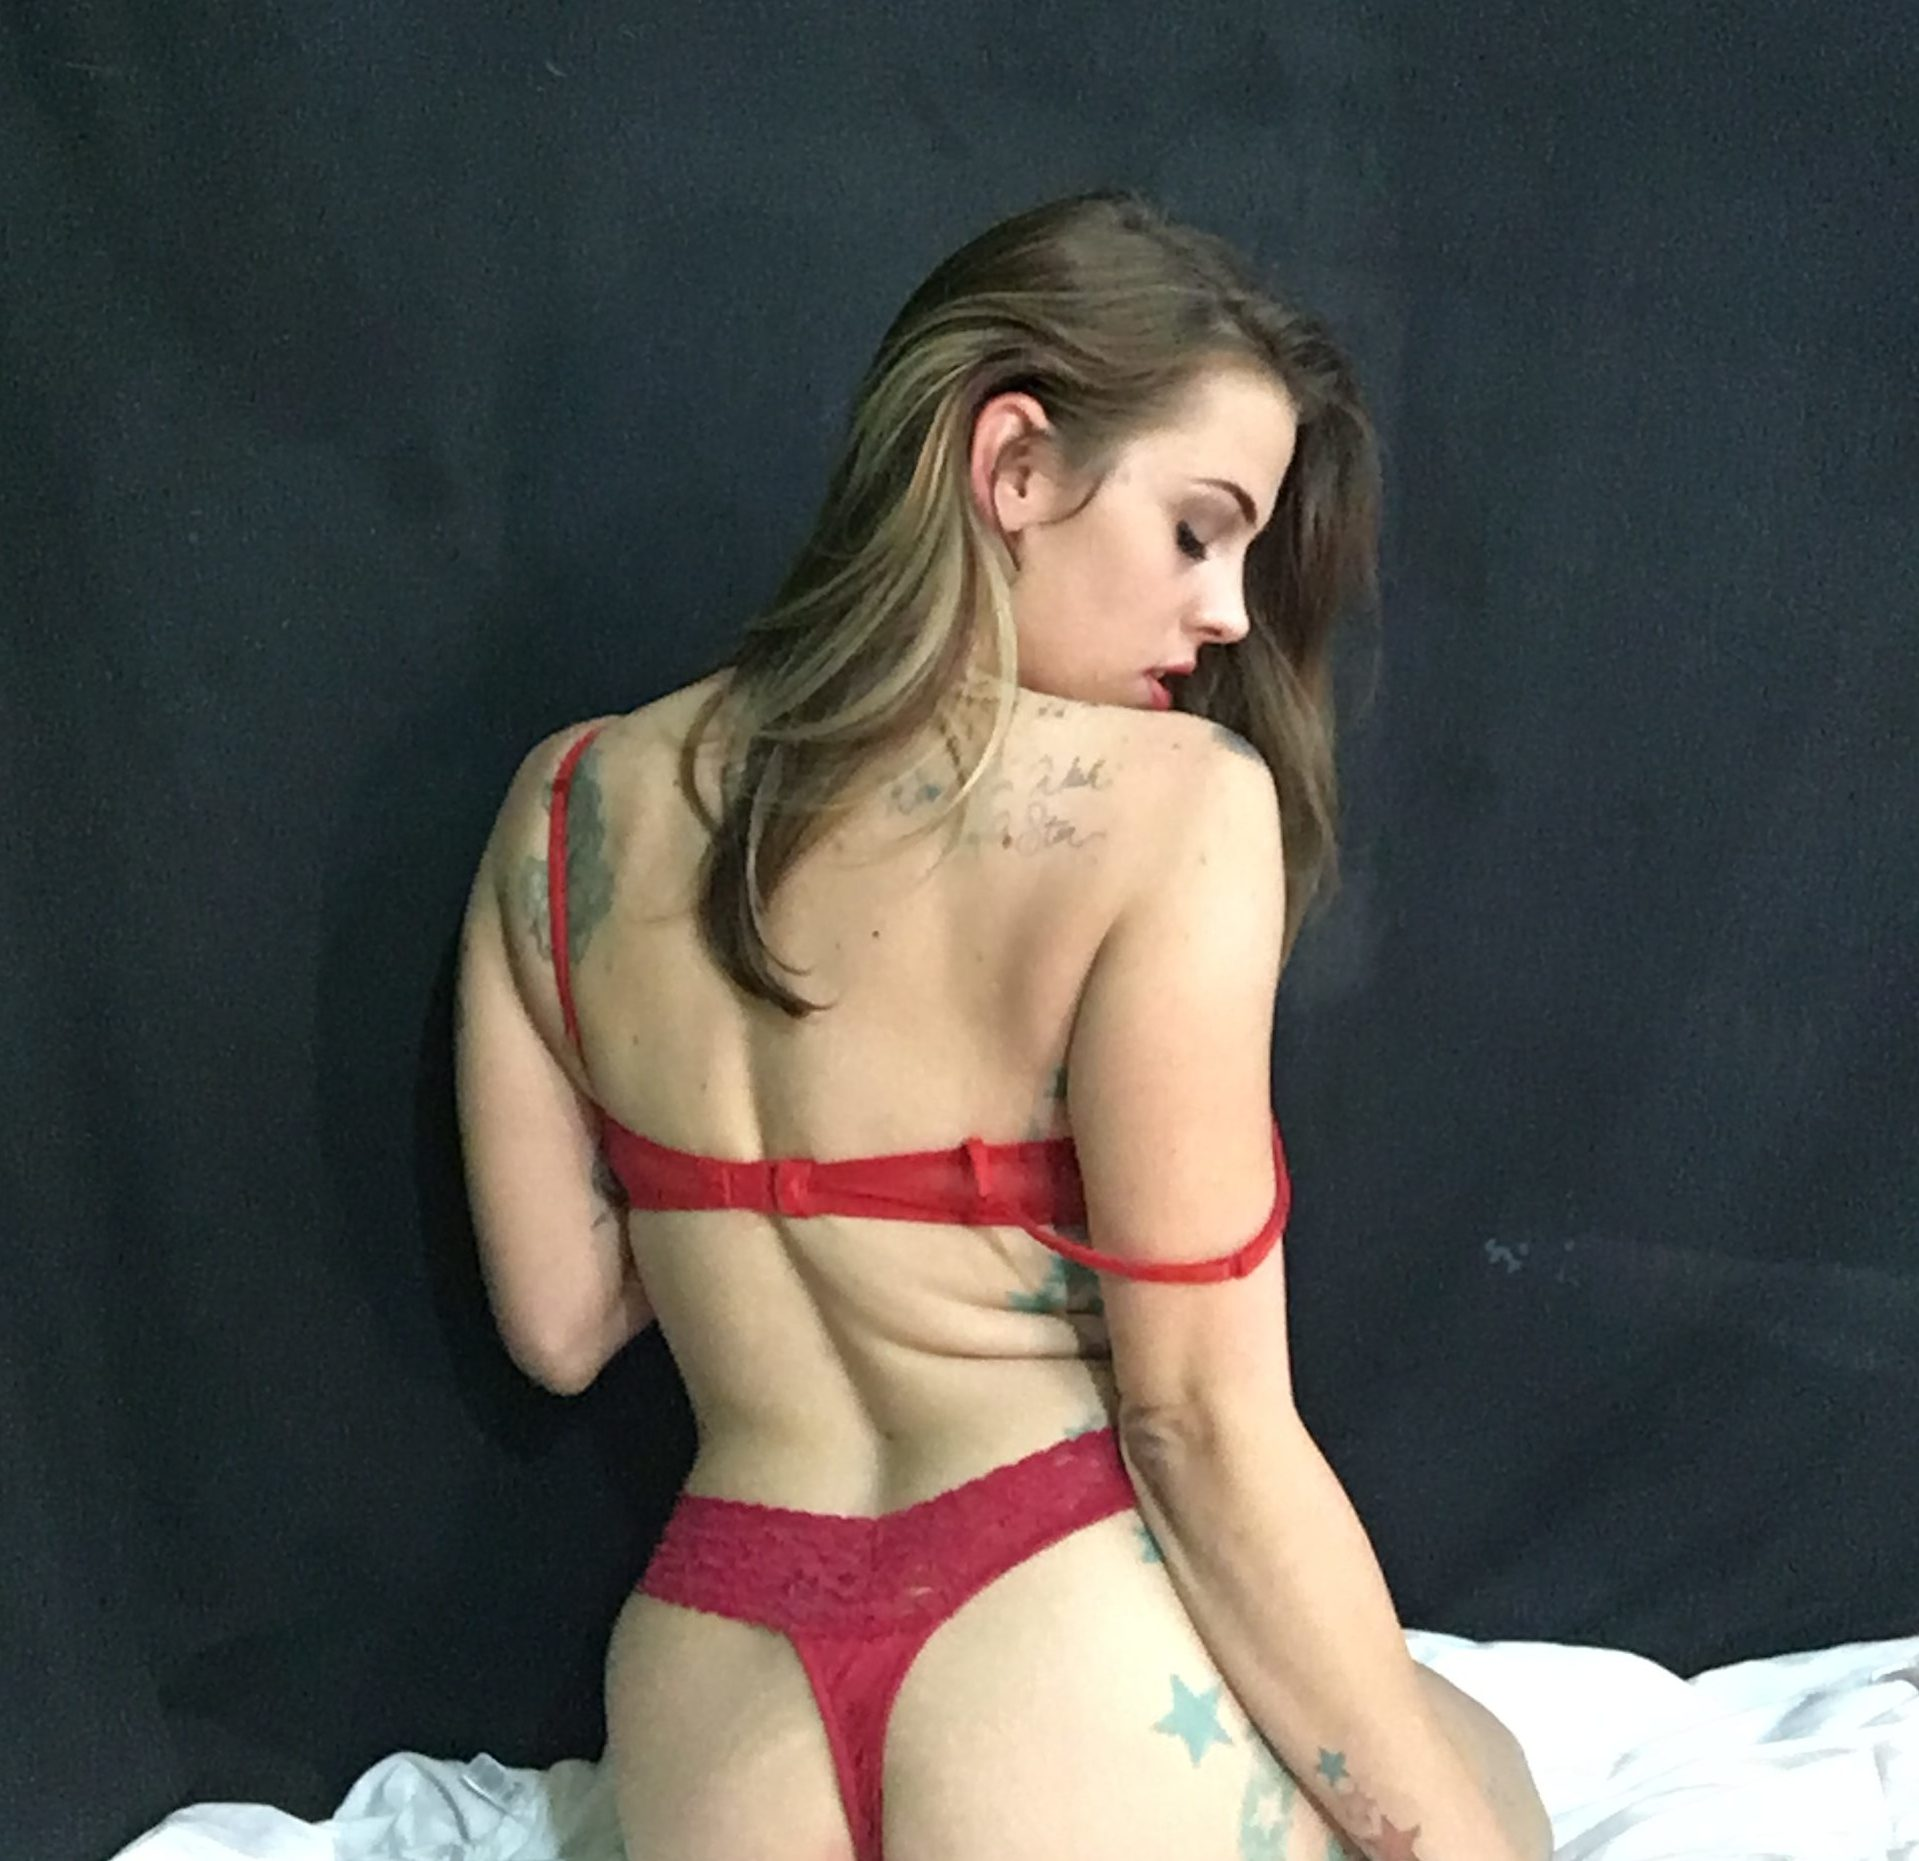 Camgirl of the Month: GGTerra